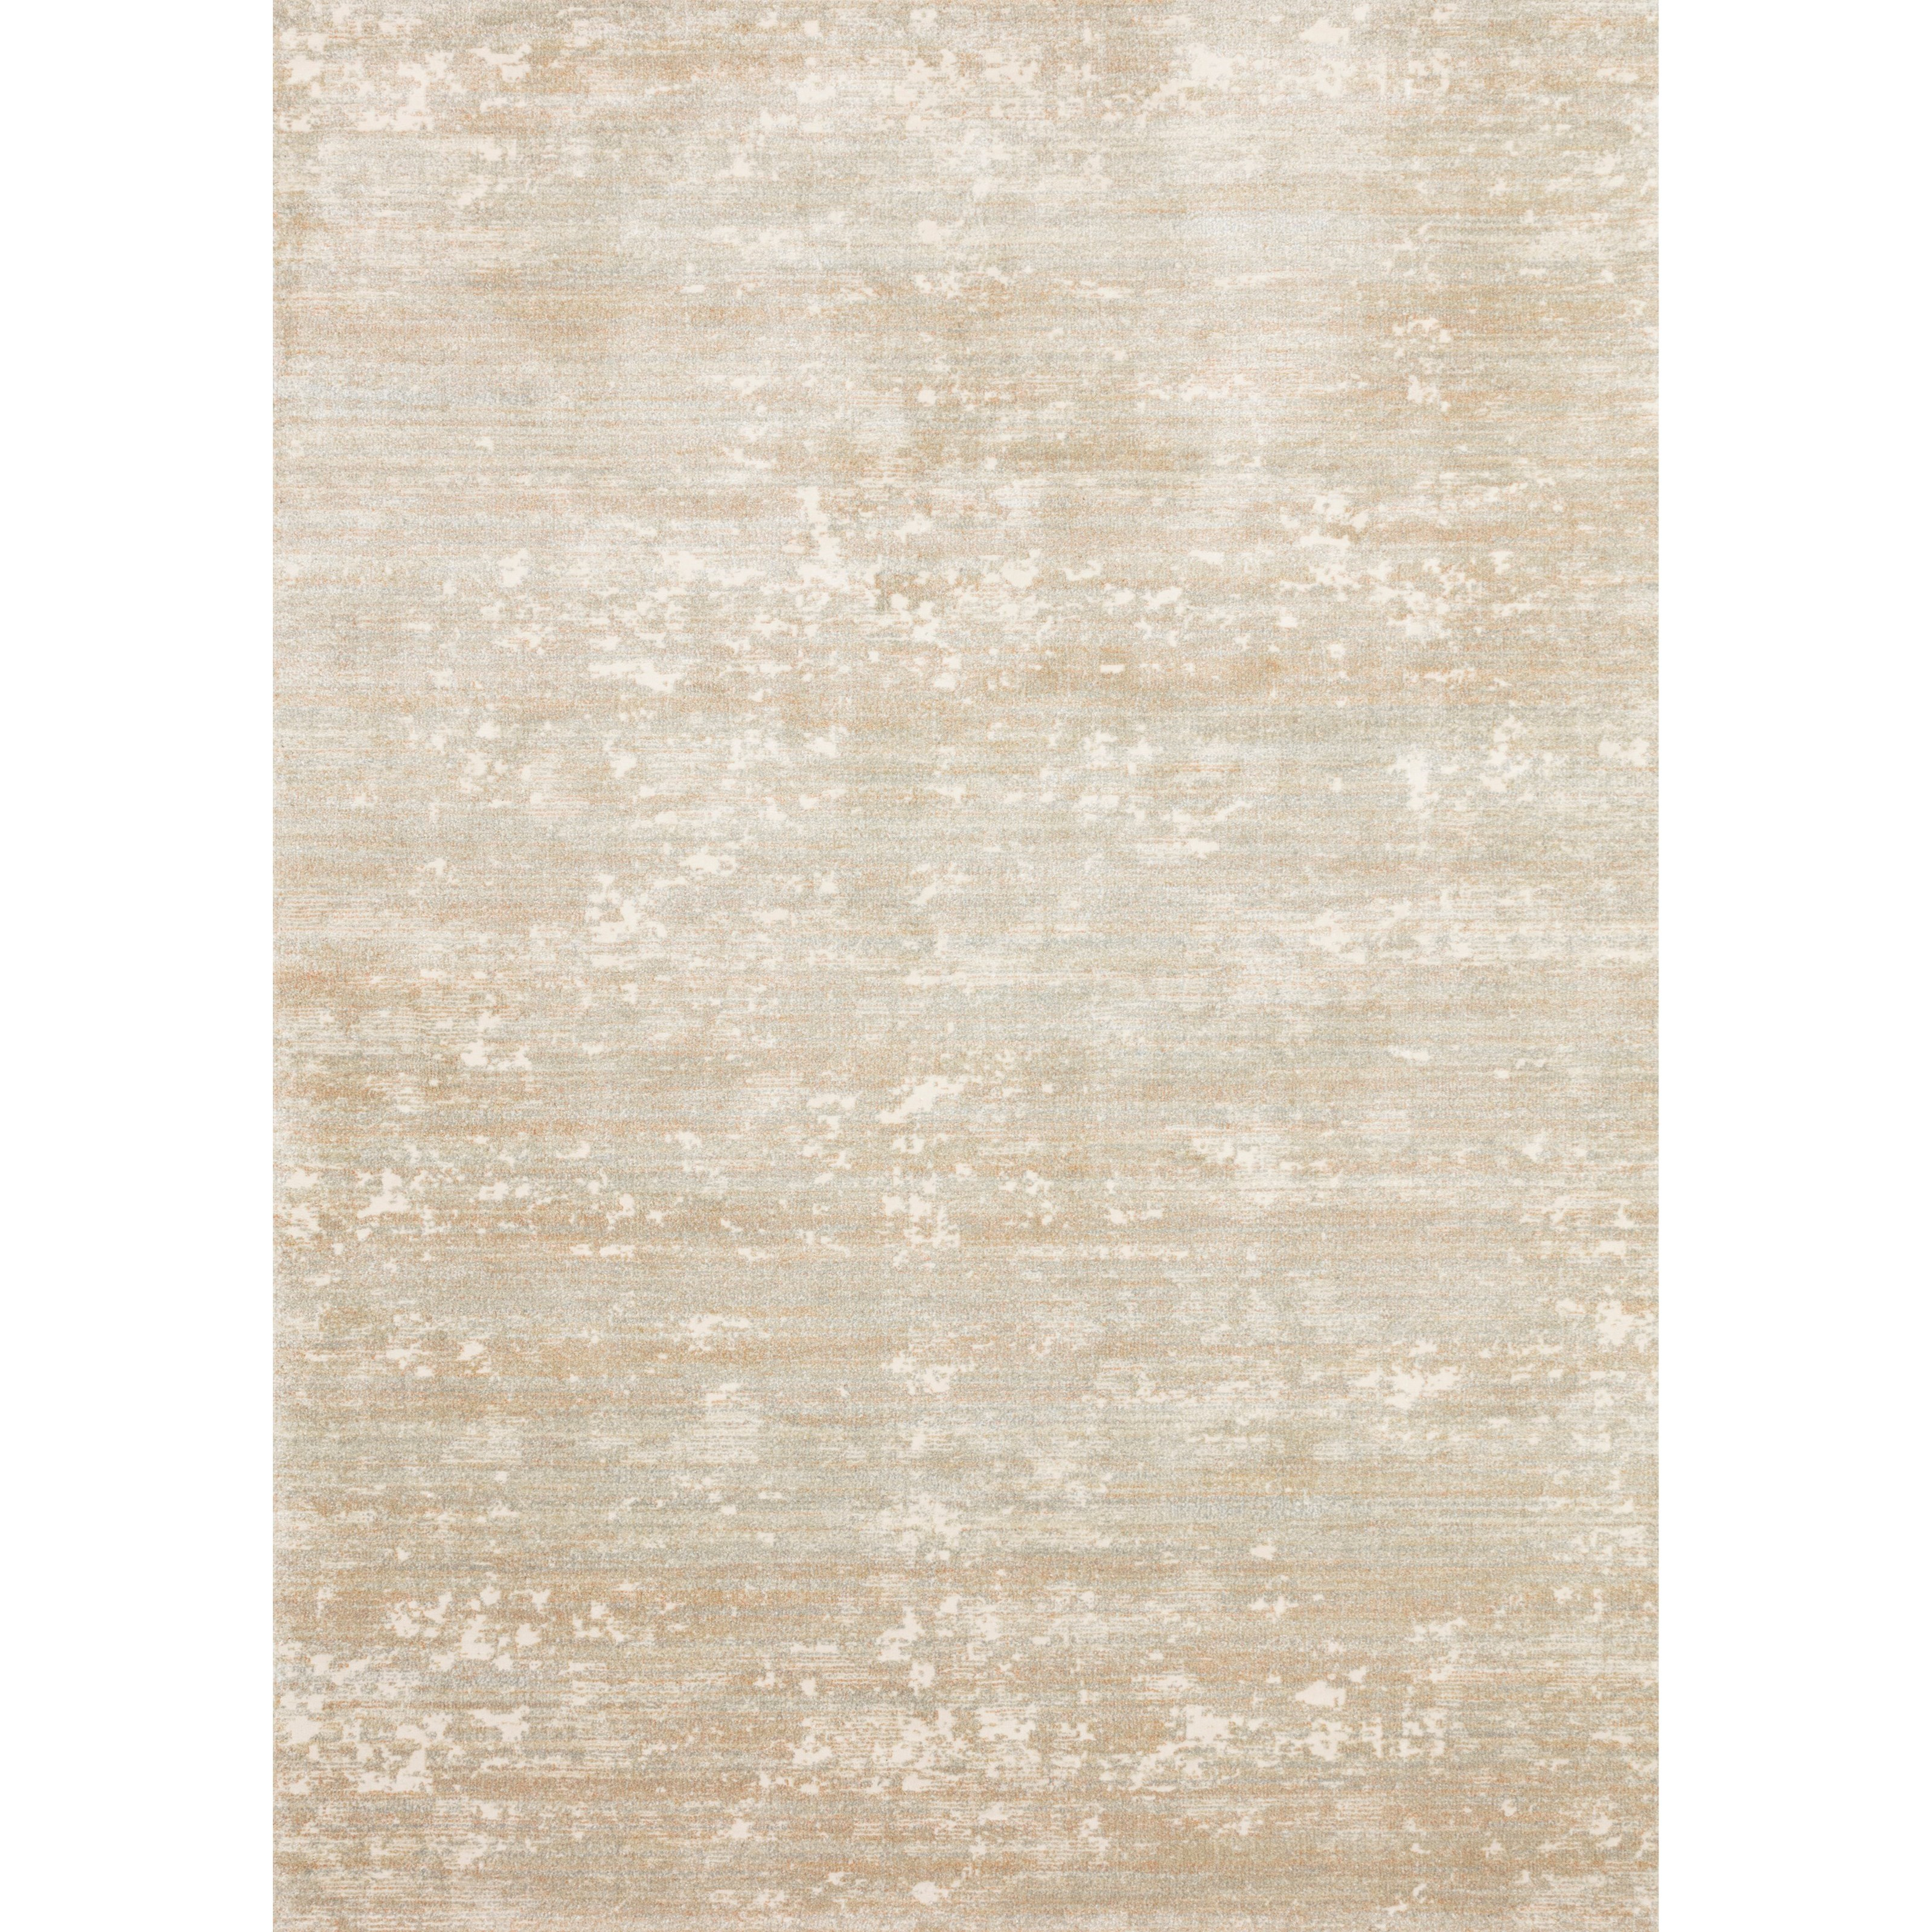 """Augustus 3'7"""" x 5'7"""" Sunset / Mist Rug by Loloi Rugs at Virginia Furniture Market"""